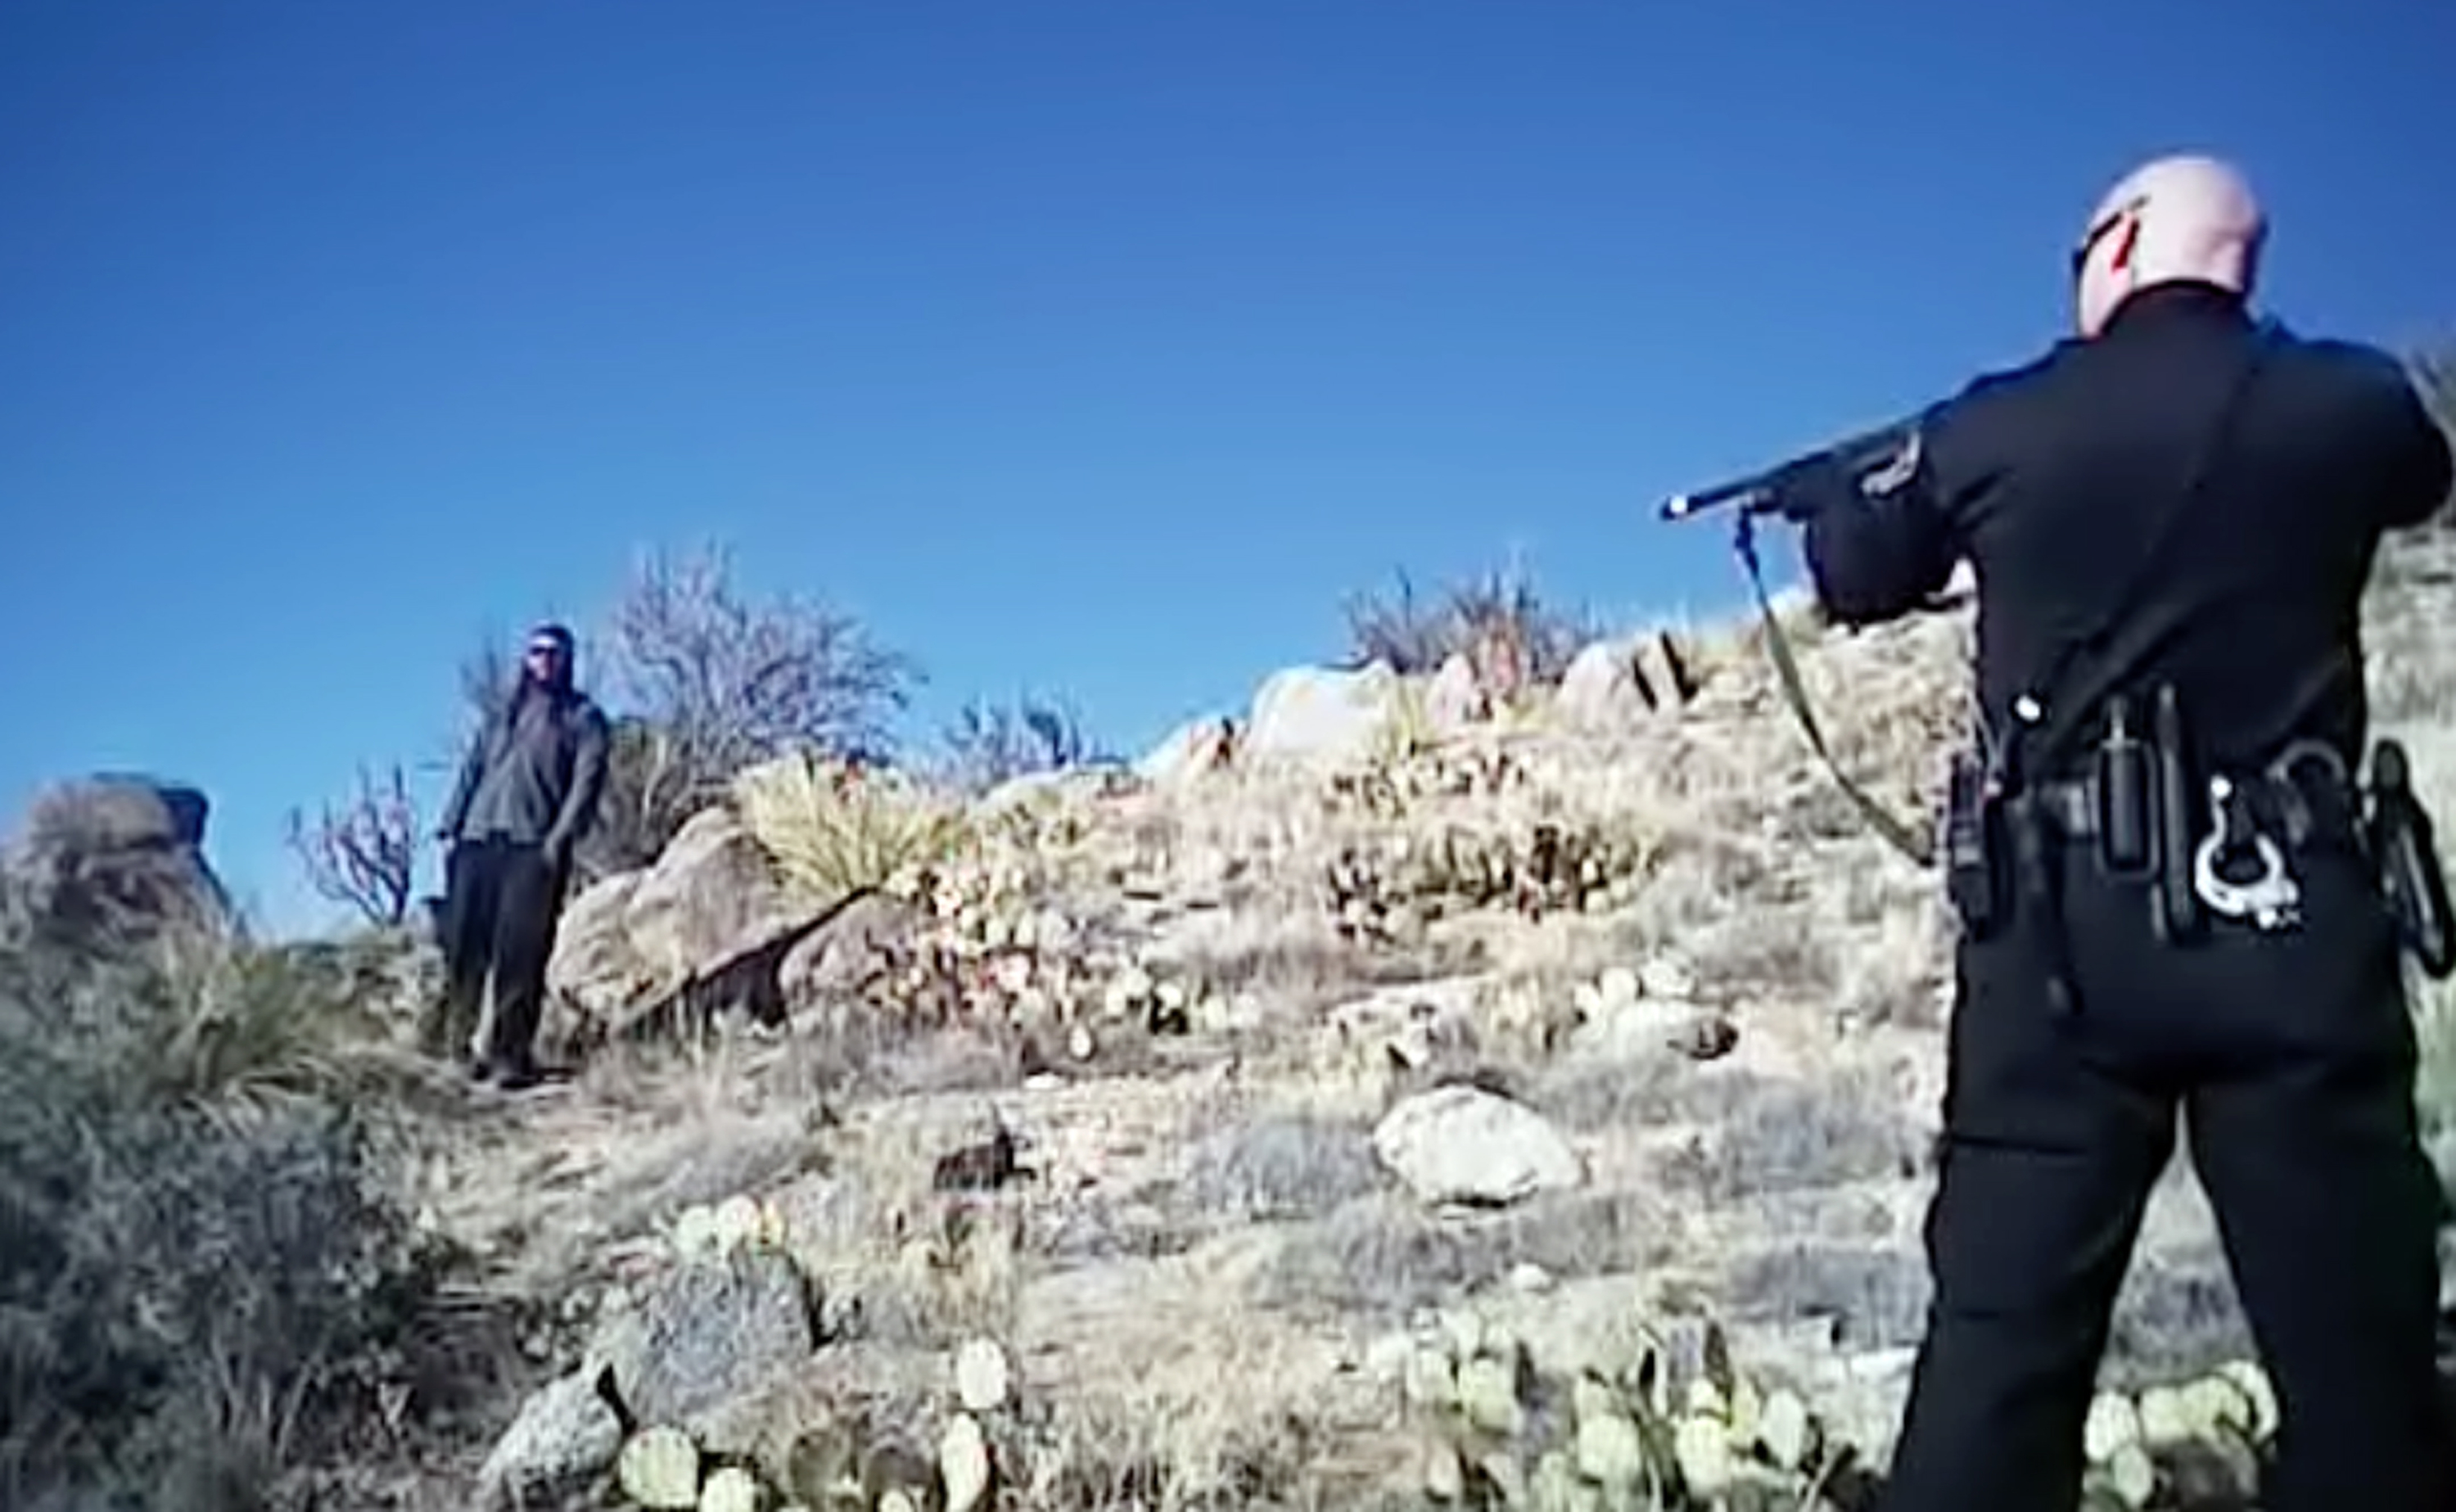 In this photo taken from a video on March 16, 2014 James Boyd is shown during a standoff with officers in the Sandia foothills in Albuquerque, N.M., before police fatally shot him.